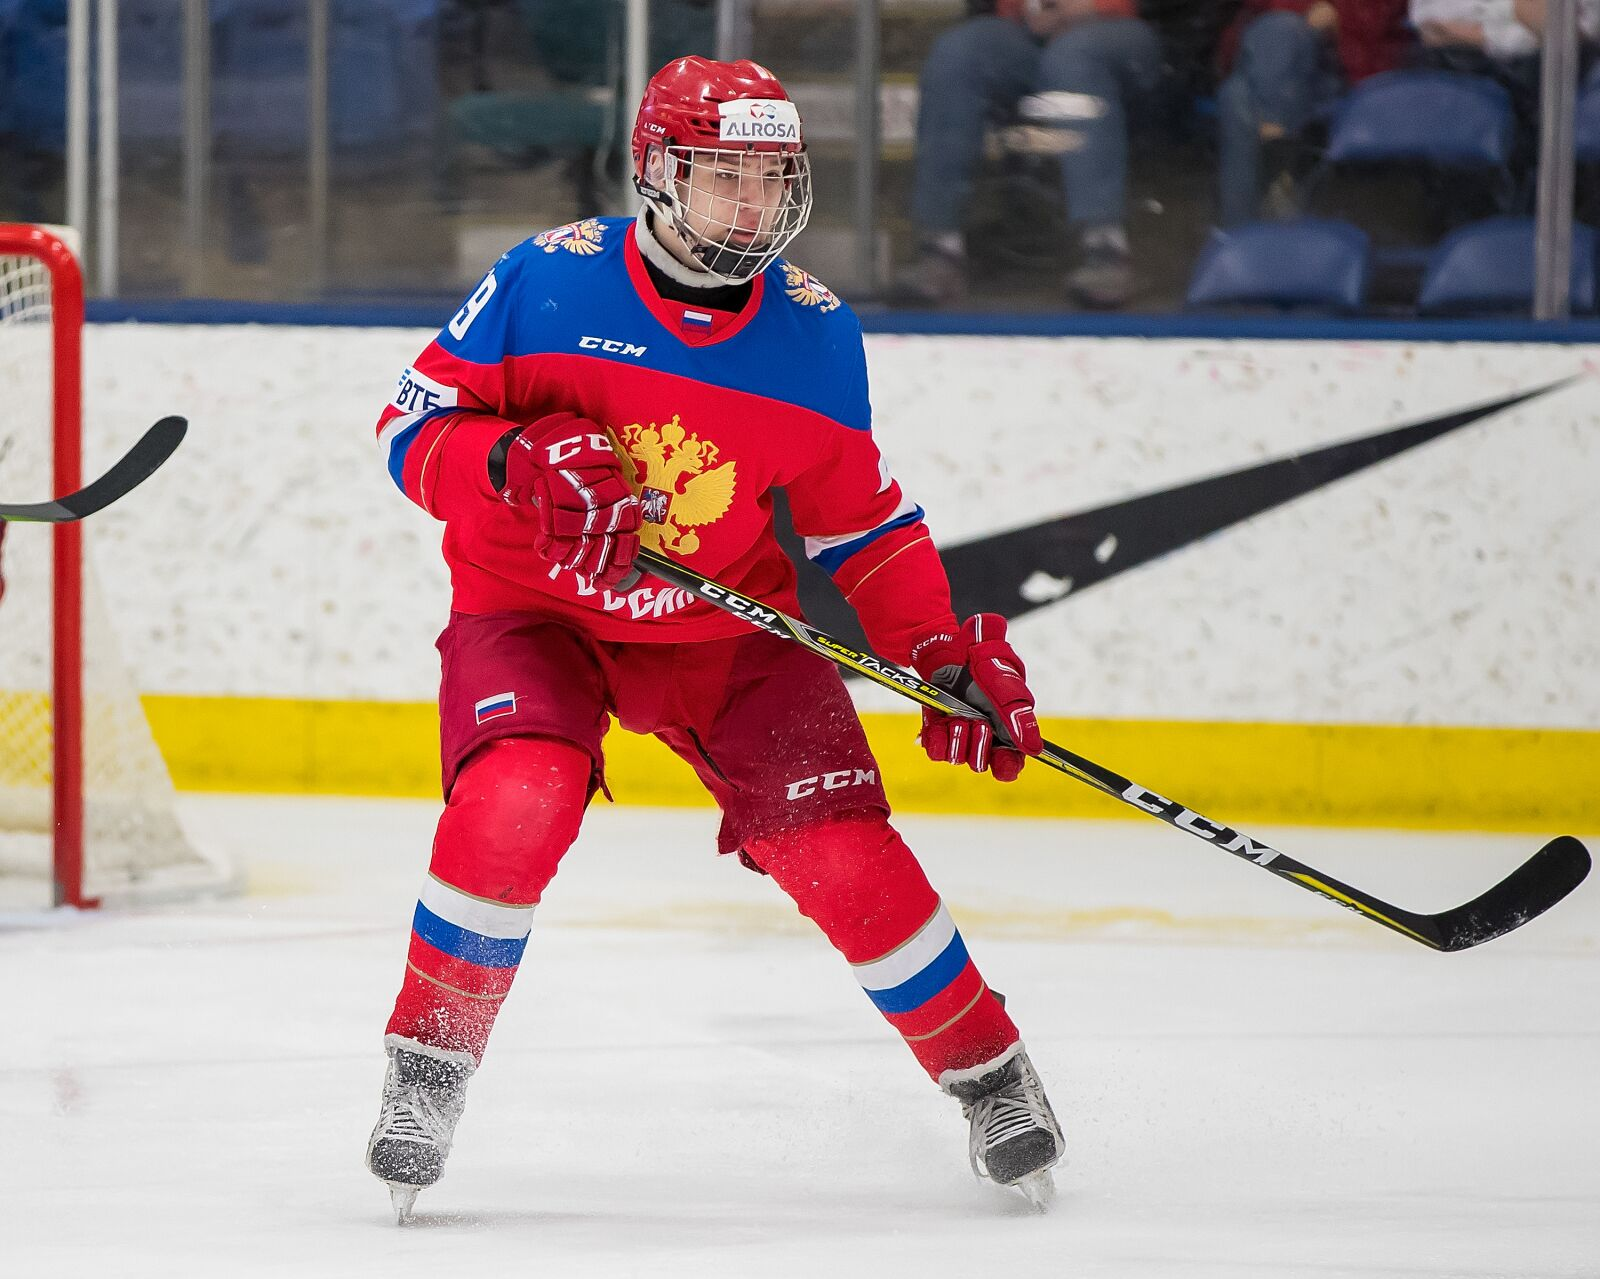 PLYMOUTH, MI - FEBRUARY 16: Vasili Podkolzin #19 of the Russian Nationals follows the play against the USA Nationals during the 2018 Under-18 Five Nations Tournament game at USA Hockey Arena on February 16, 2018 in Plymouth, Michigan. USA defeated Russia 5-4. (Photo by Dave Reginek/Getty Images)*** Local Caption *** Vasili Podkolzin